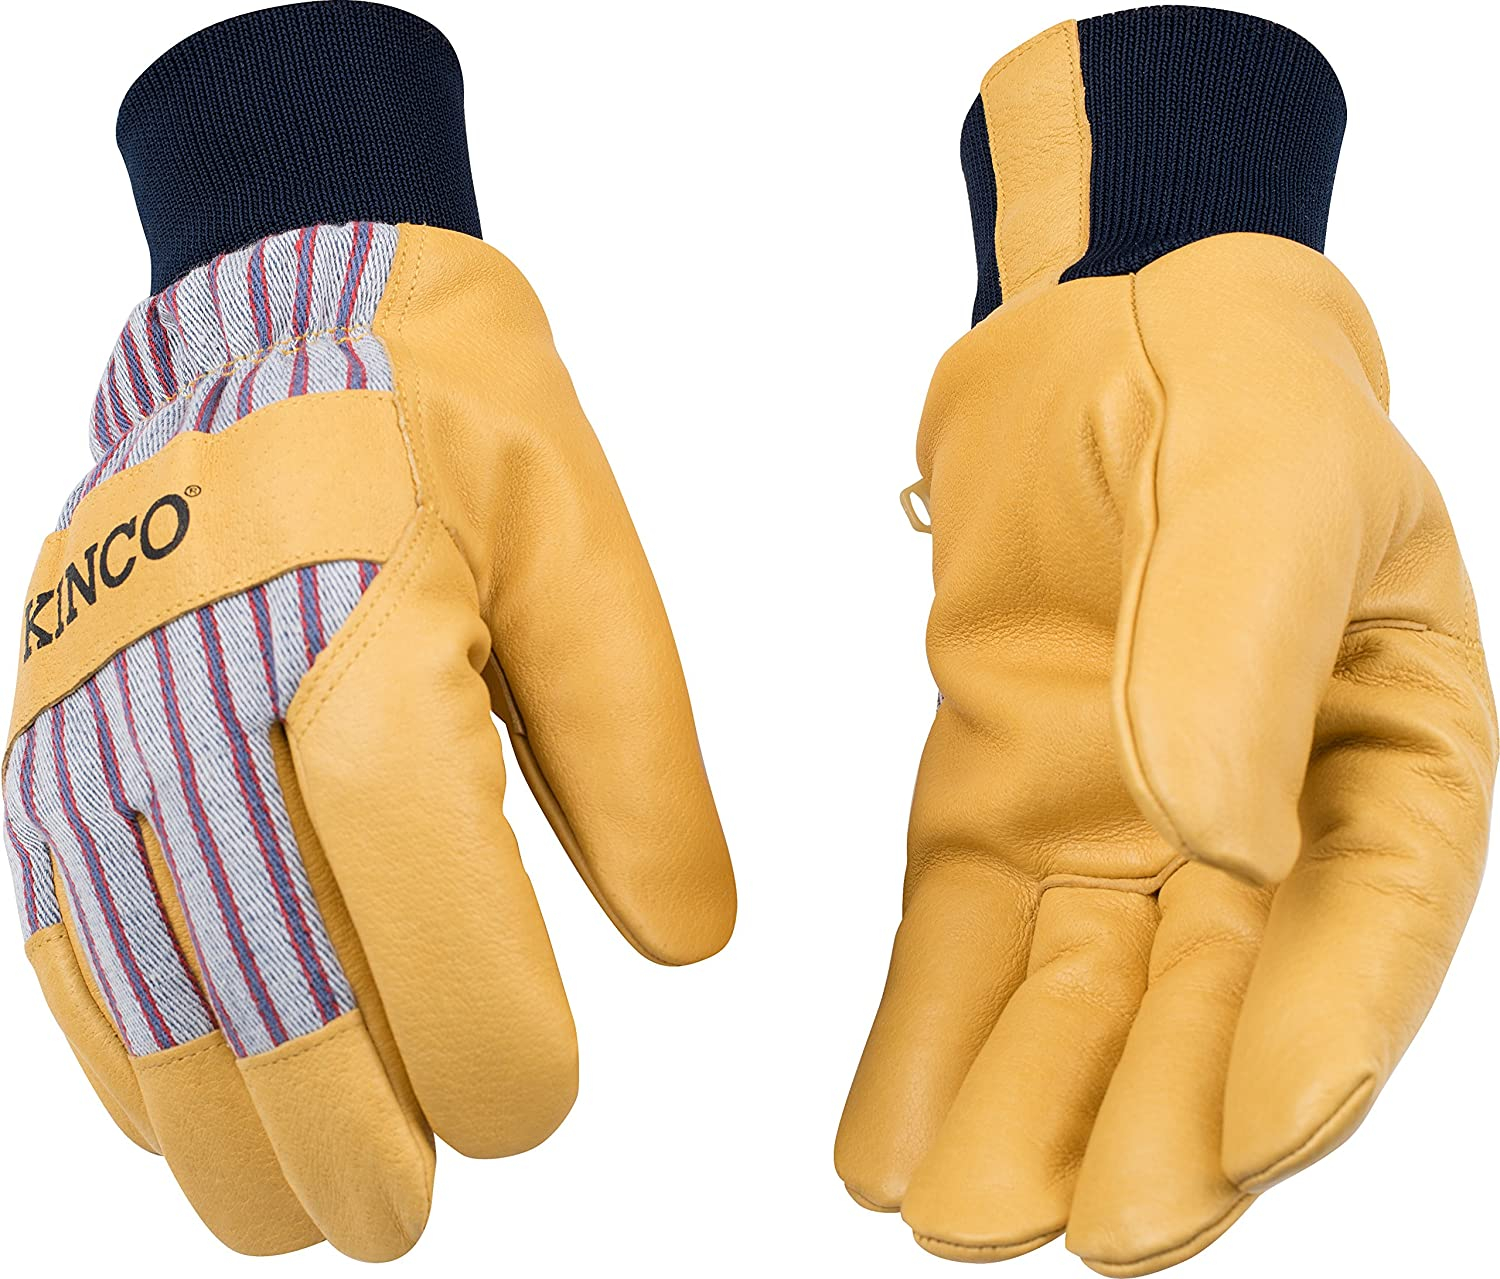 Kinco 1927KW Lined Grain Pigskin Leather Glove with Knit Wrist, Work, Medium, Palomino (Pack of 6 Pairs) by KINCO INTERNATIONAL  B00AN7YQX2